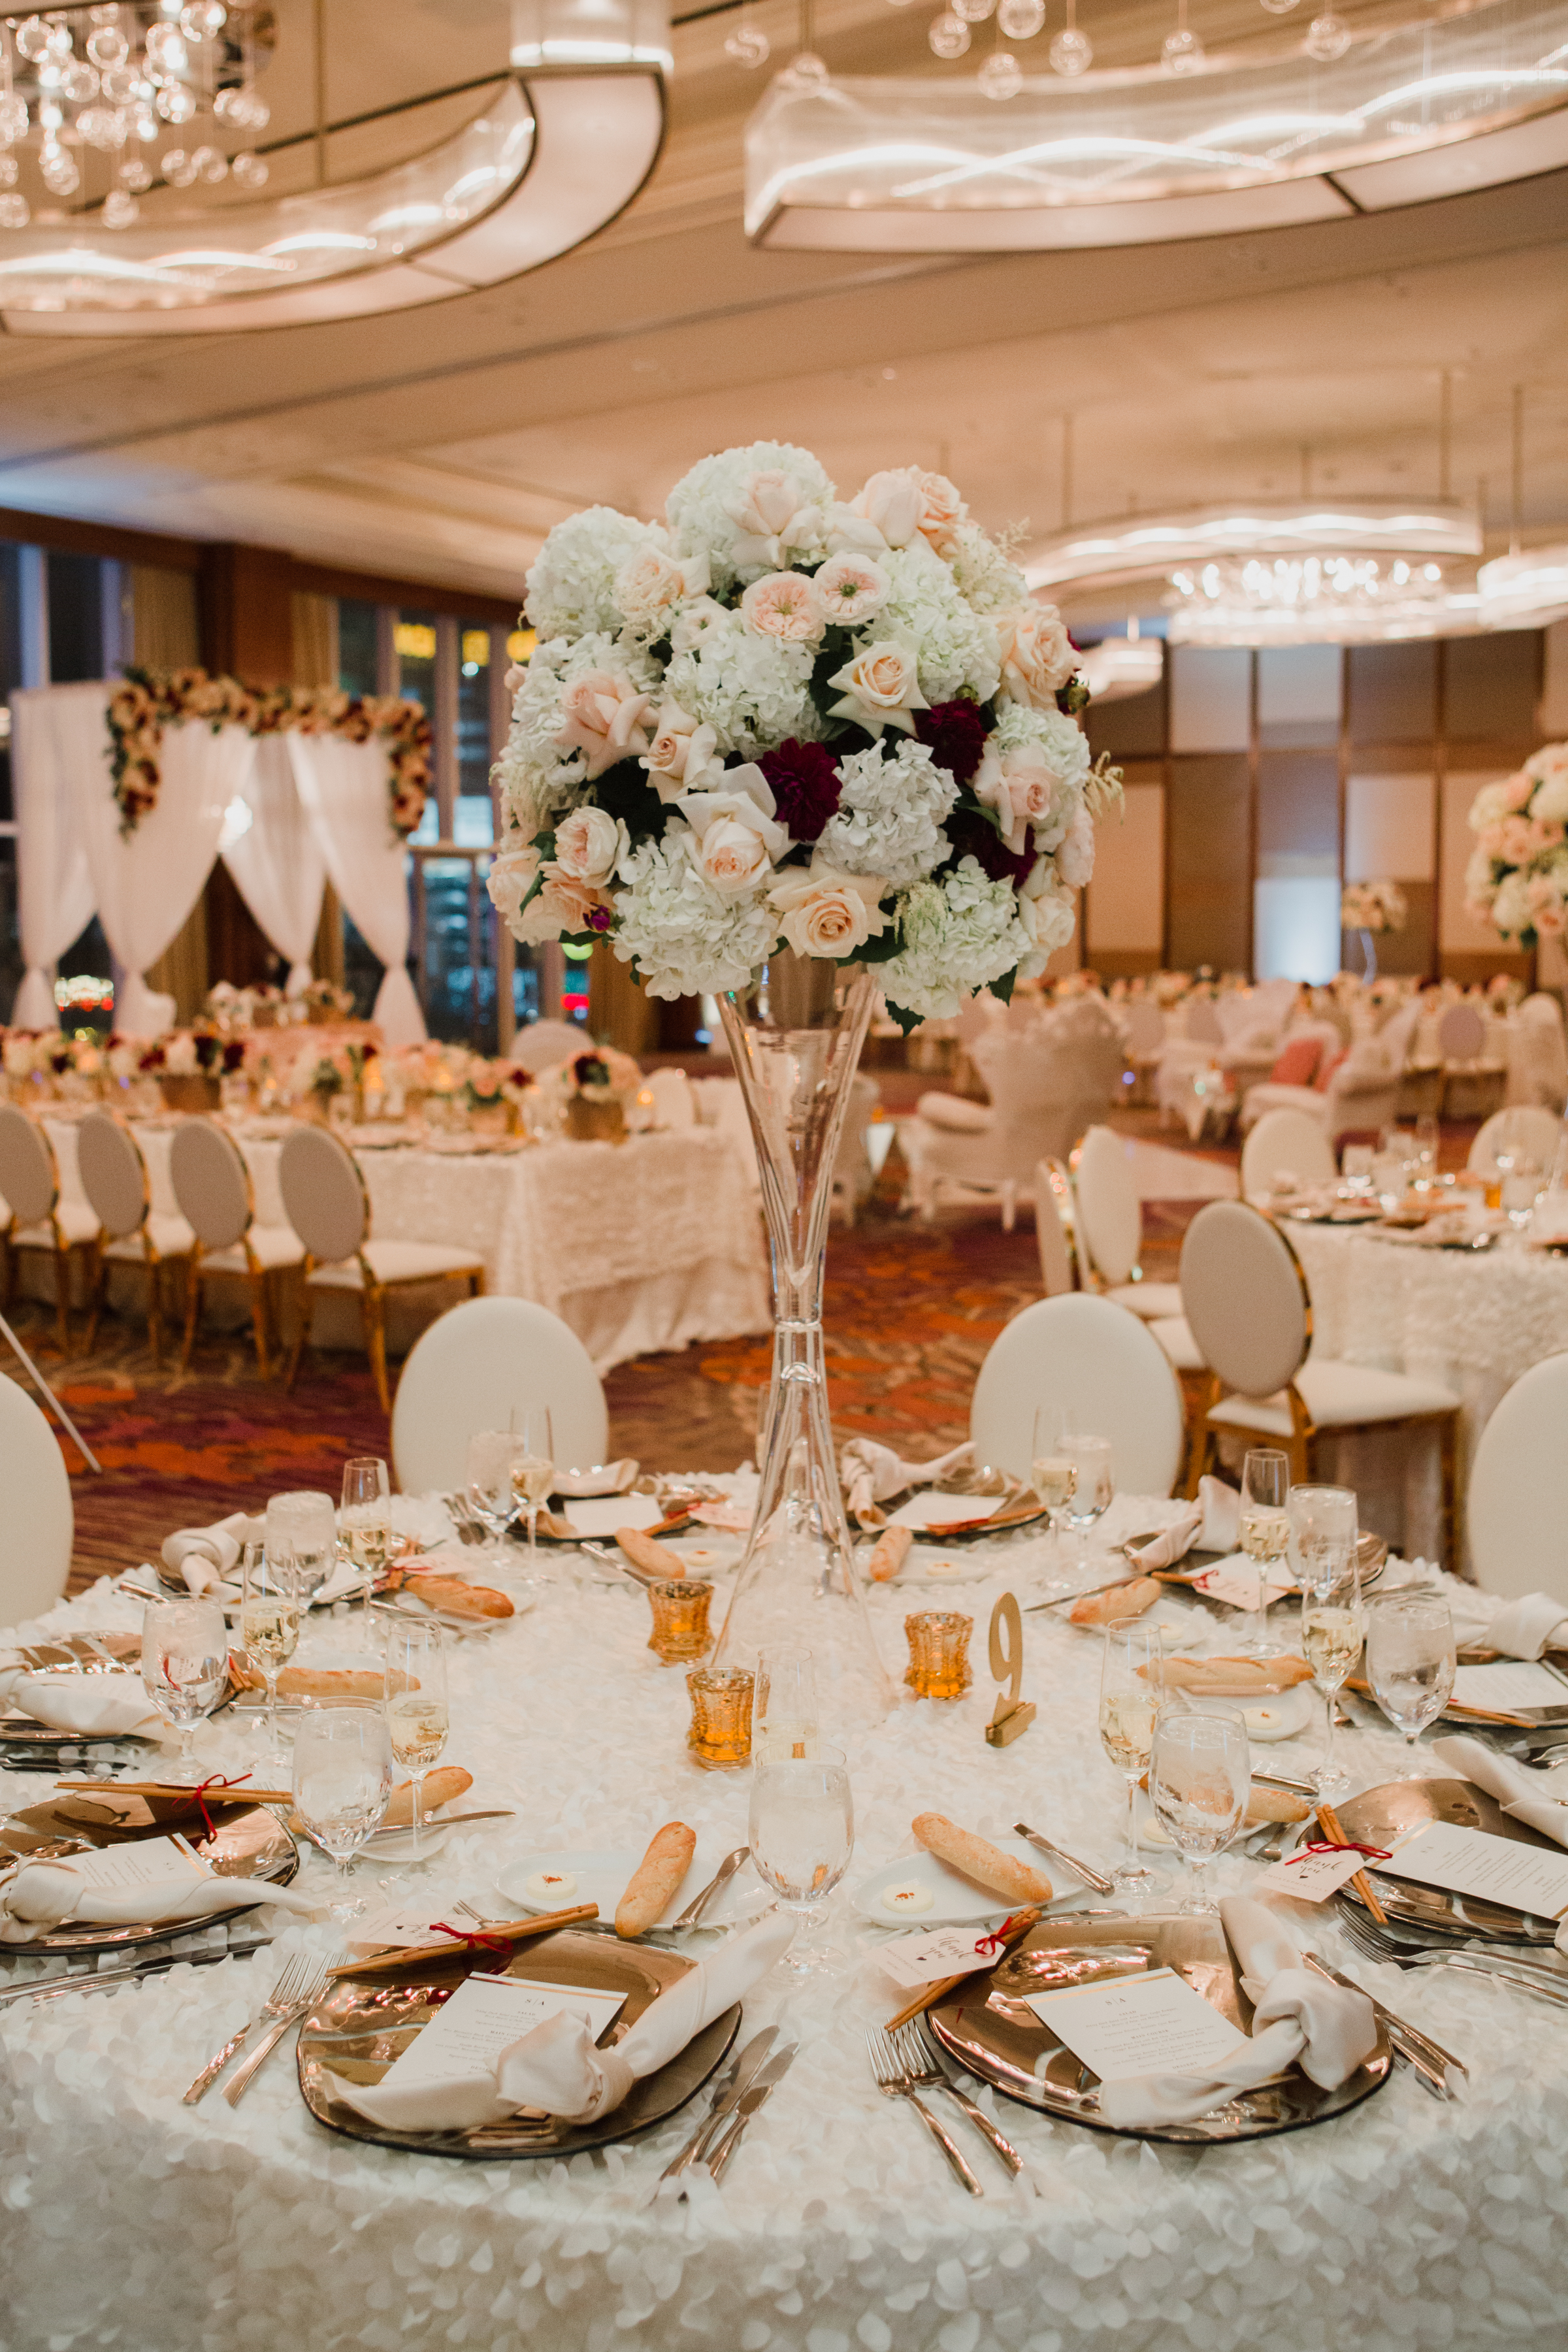 Ivory large centerpieces with dark red pops of color.Luxury wedding at the Mandarin Oriental with a color scheme of white, blush, and pops of wine red produced by Las Vegas Wedding Planner Andrea Eppolito with photos by Stephen Salazar Photography.